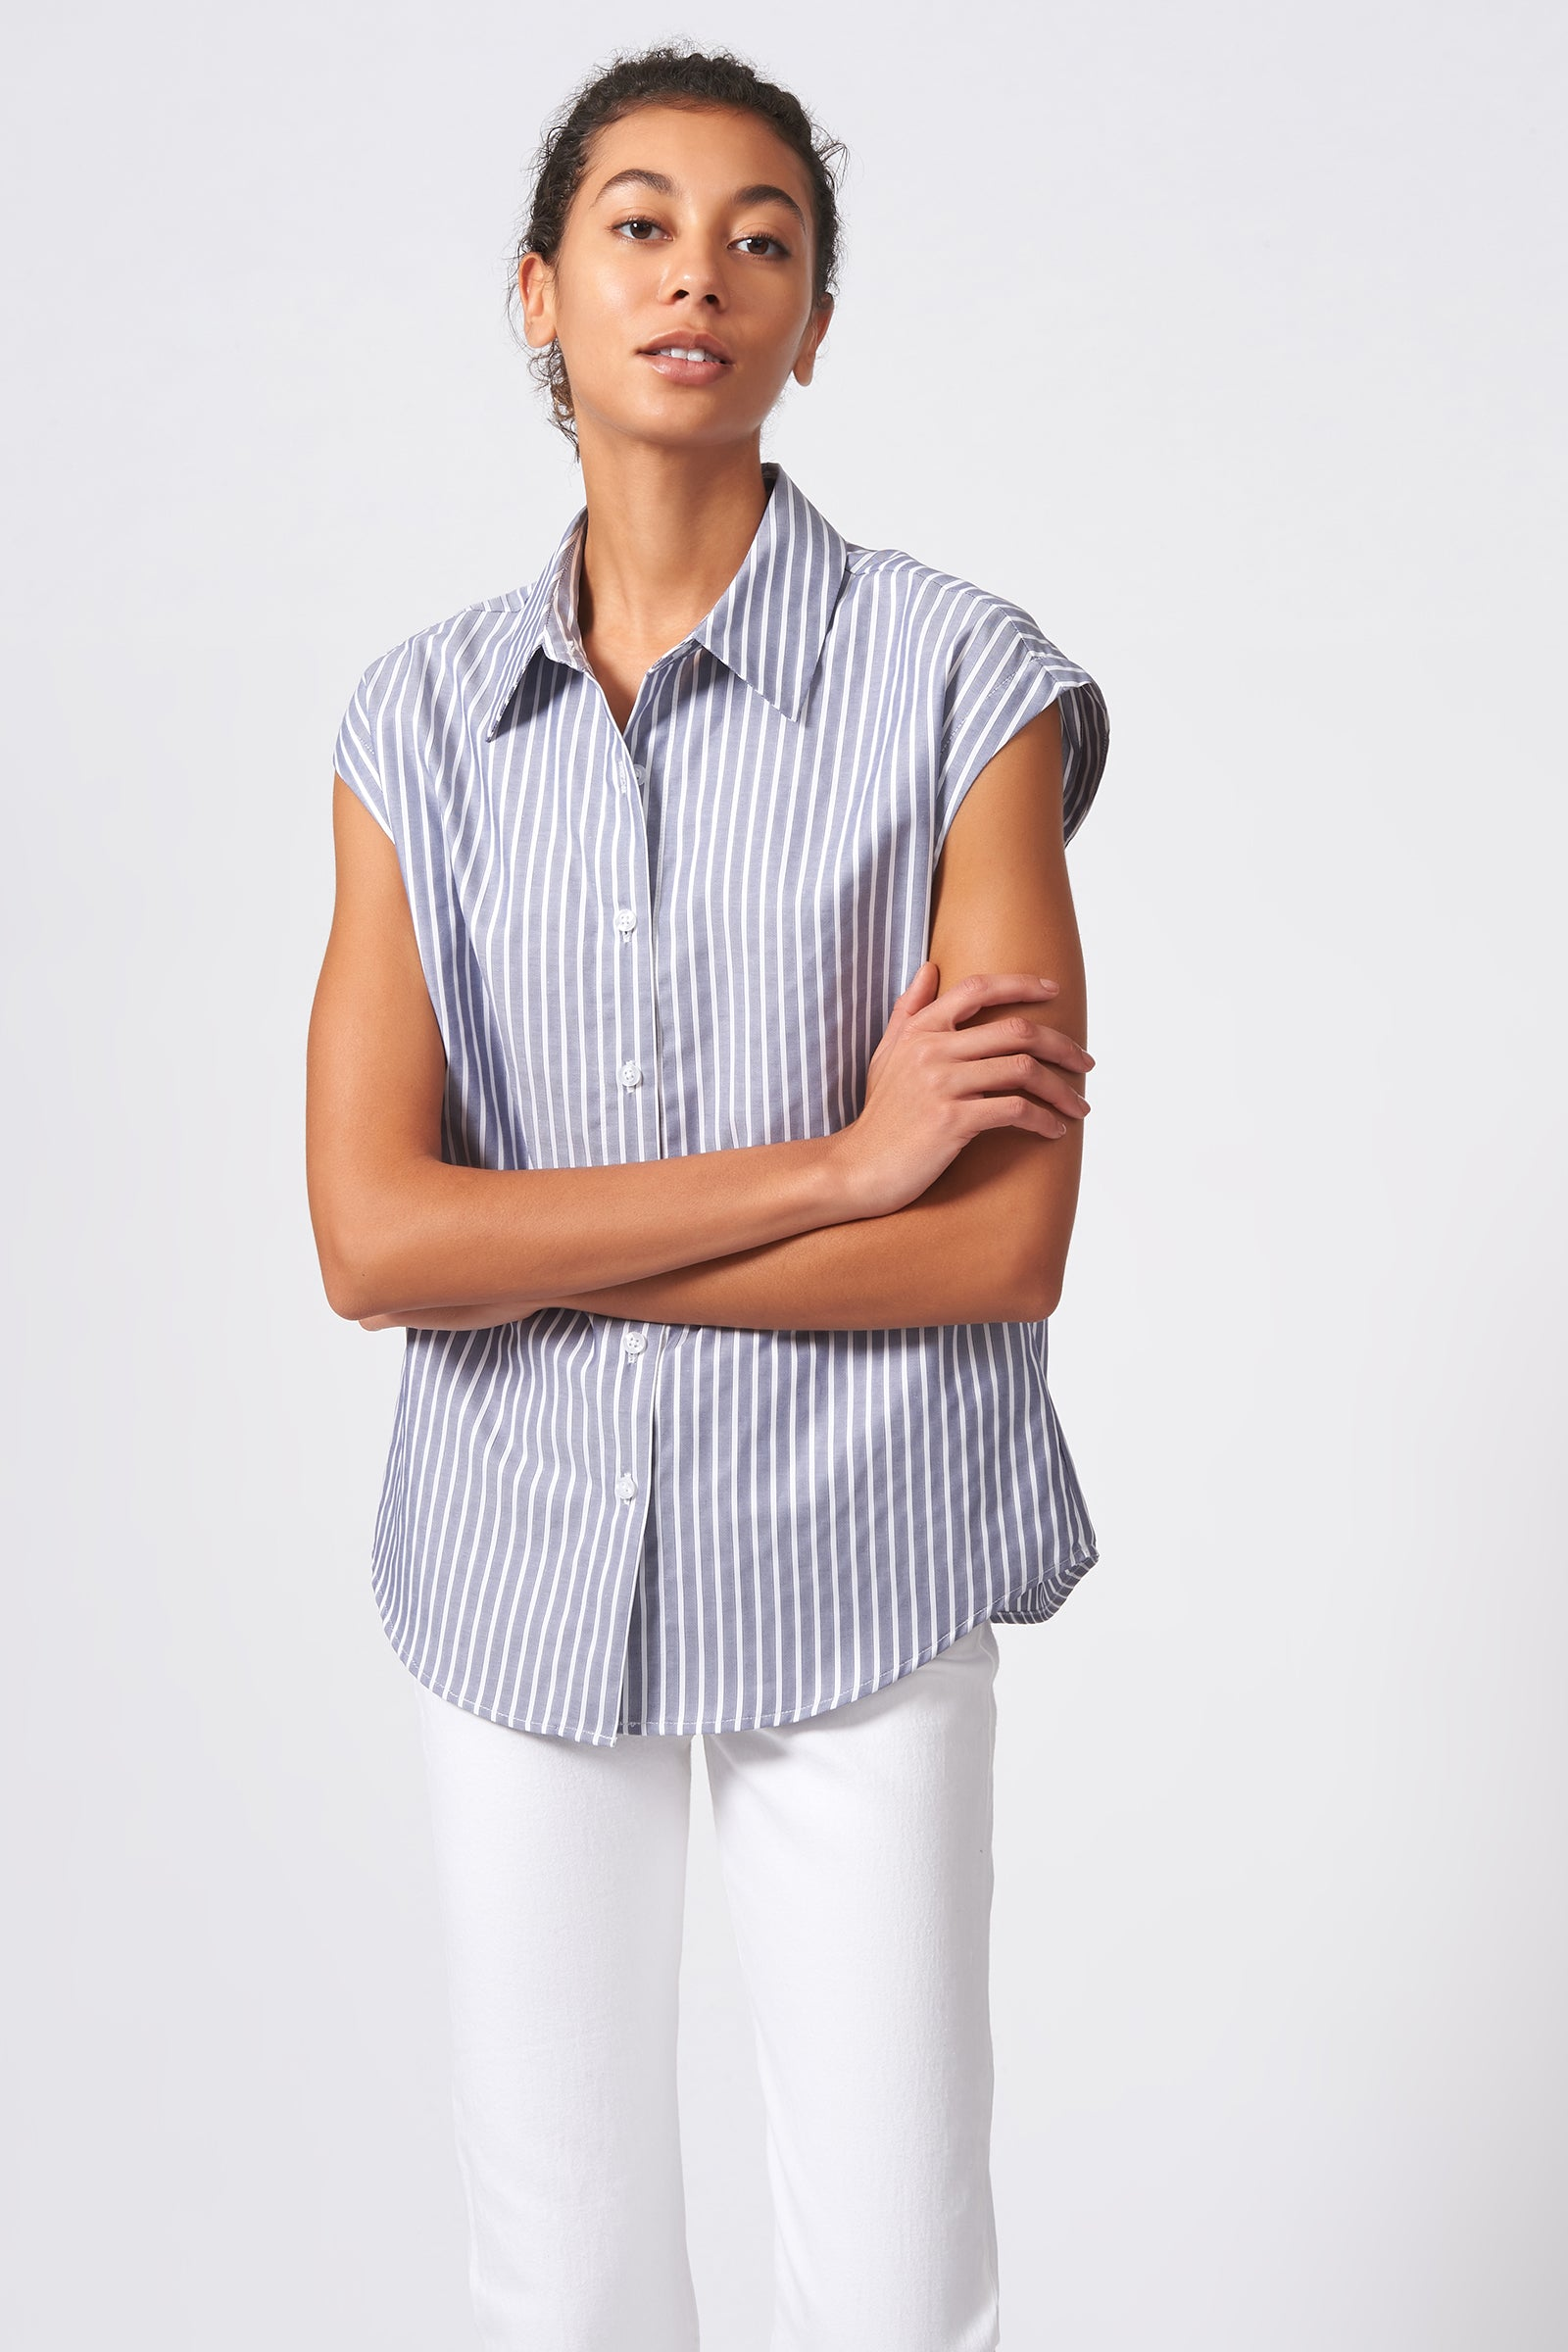 Kal Rieman Collared Cap Sleeve Shirt in Oxford Stripe on Model Front View